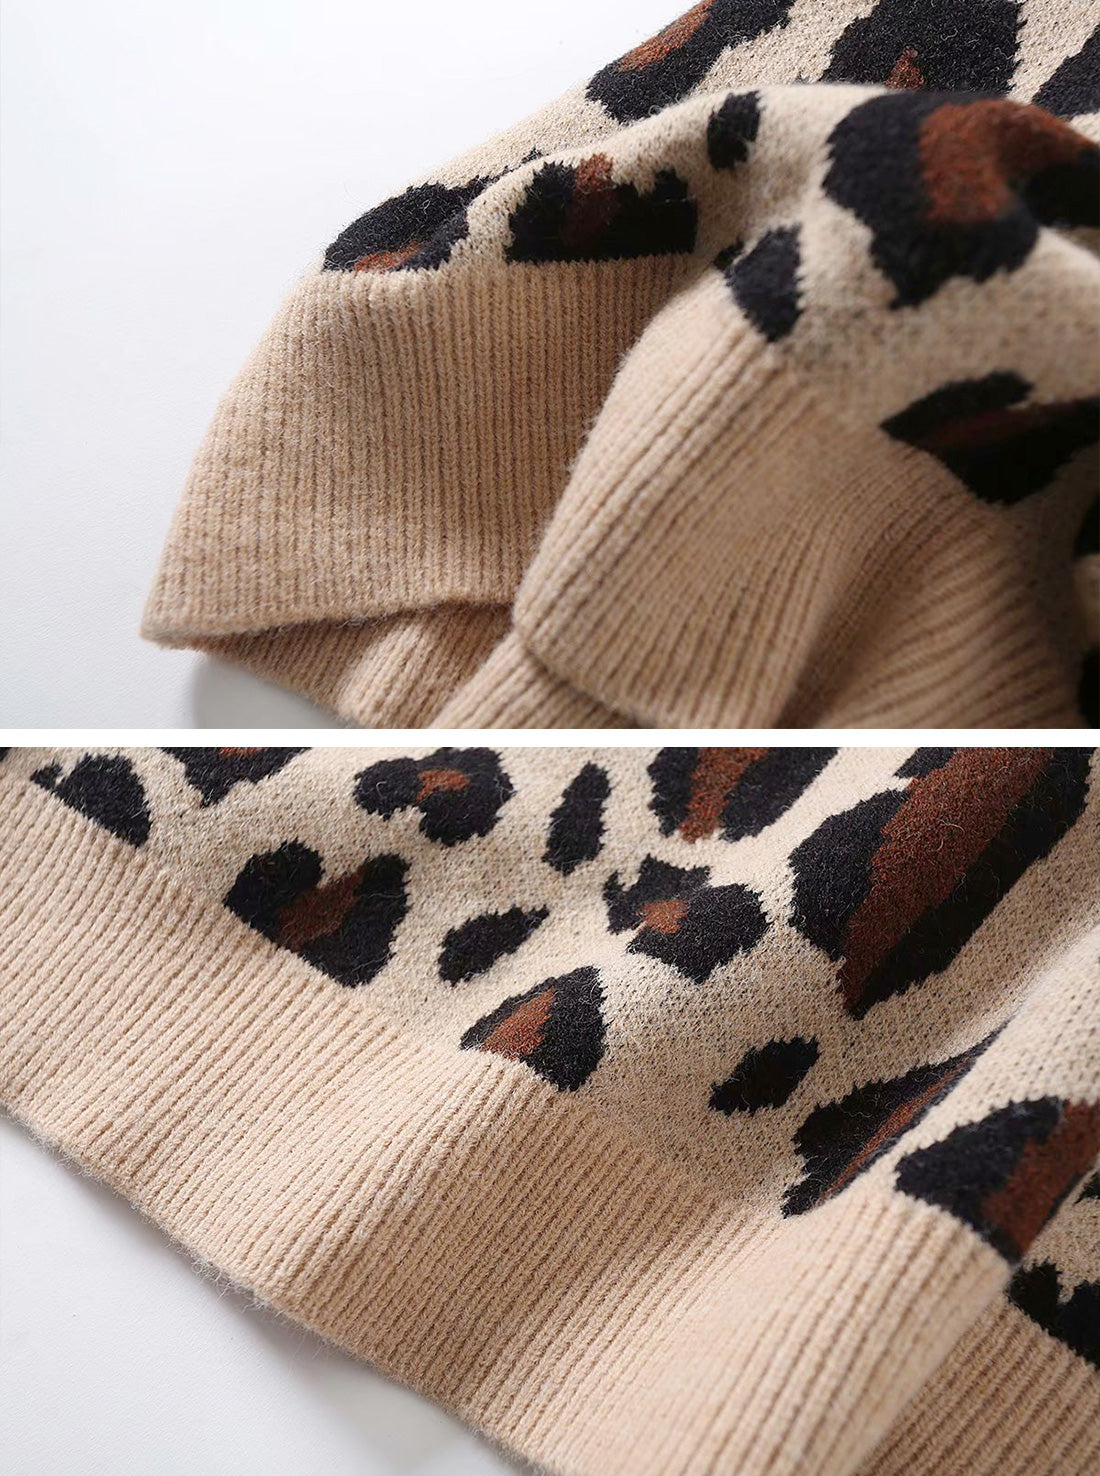 Loose Leopard Print Pullover Sweater Top Details 4